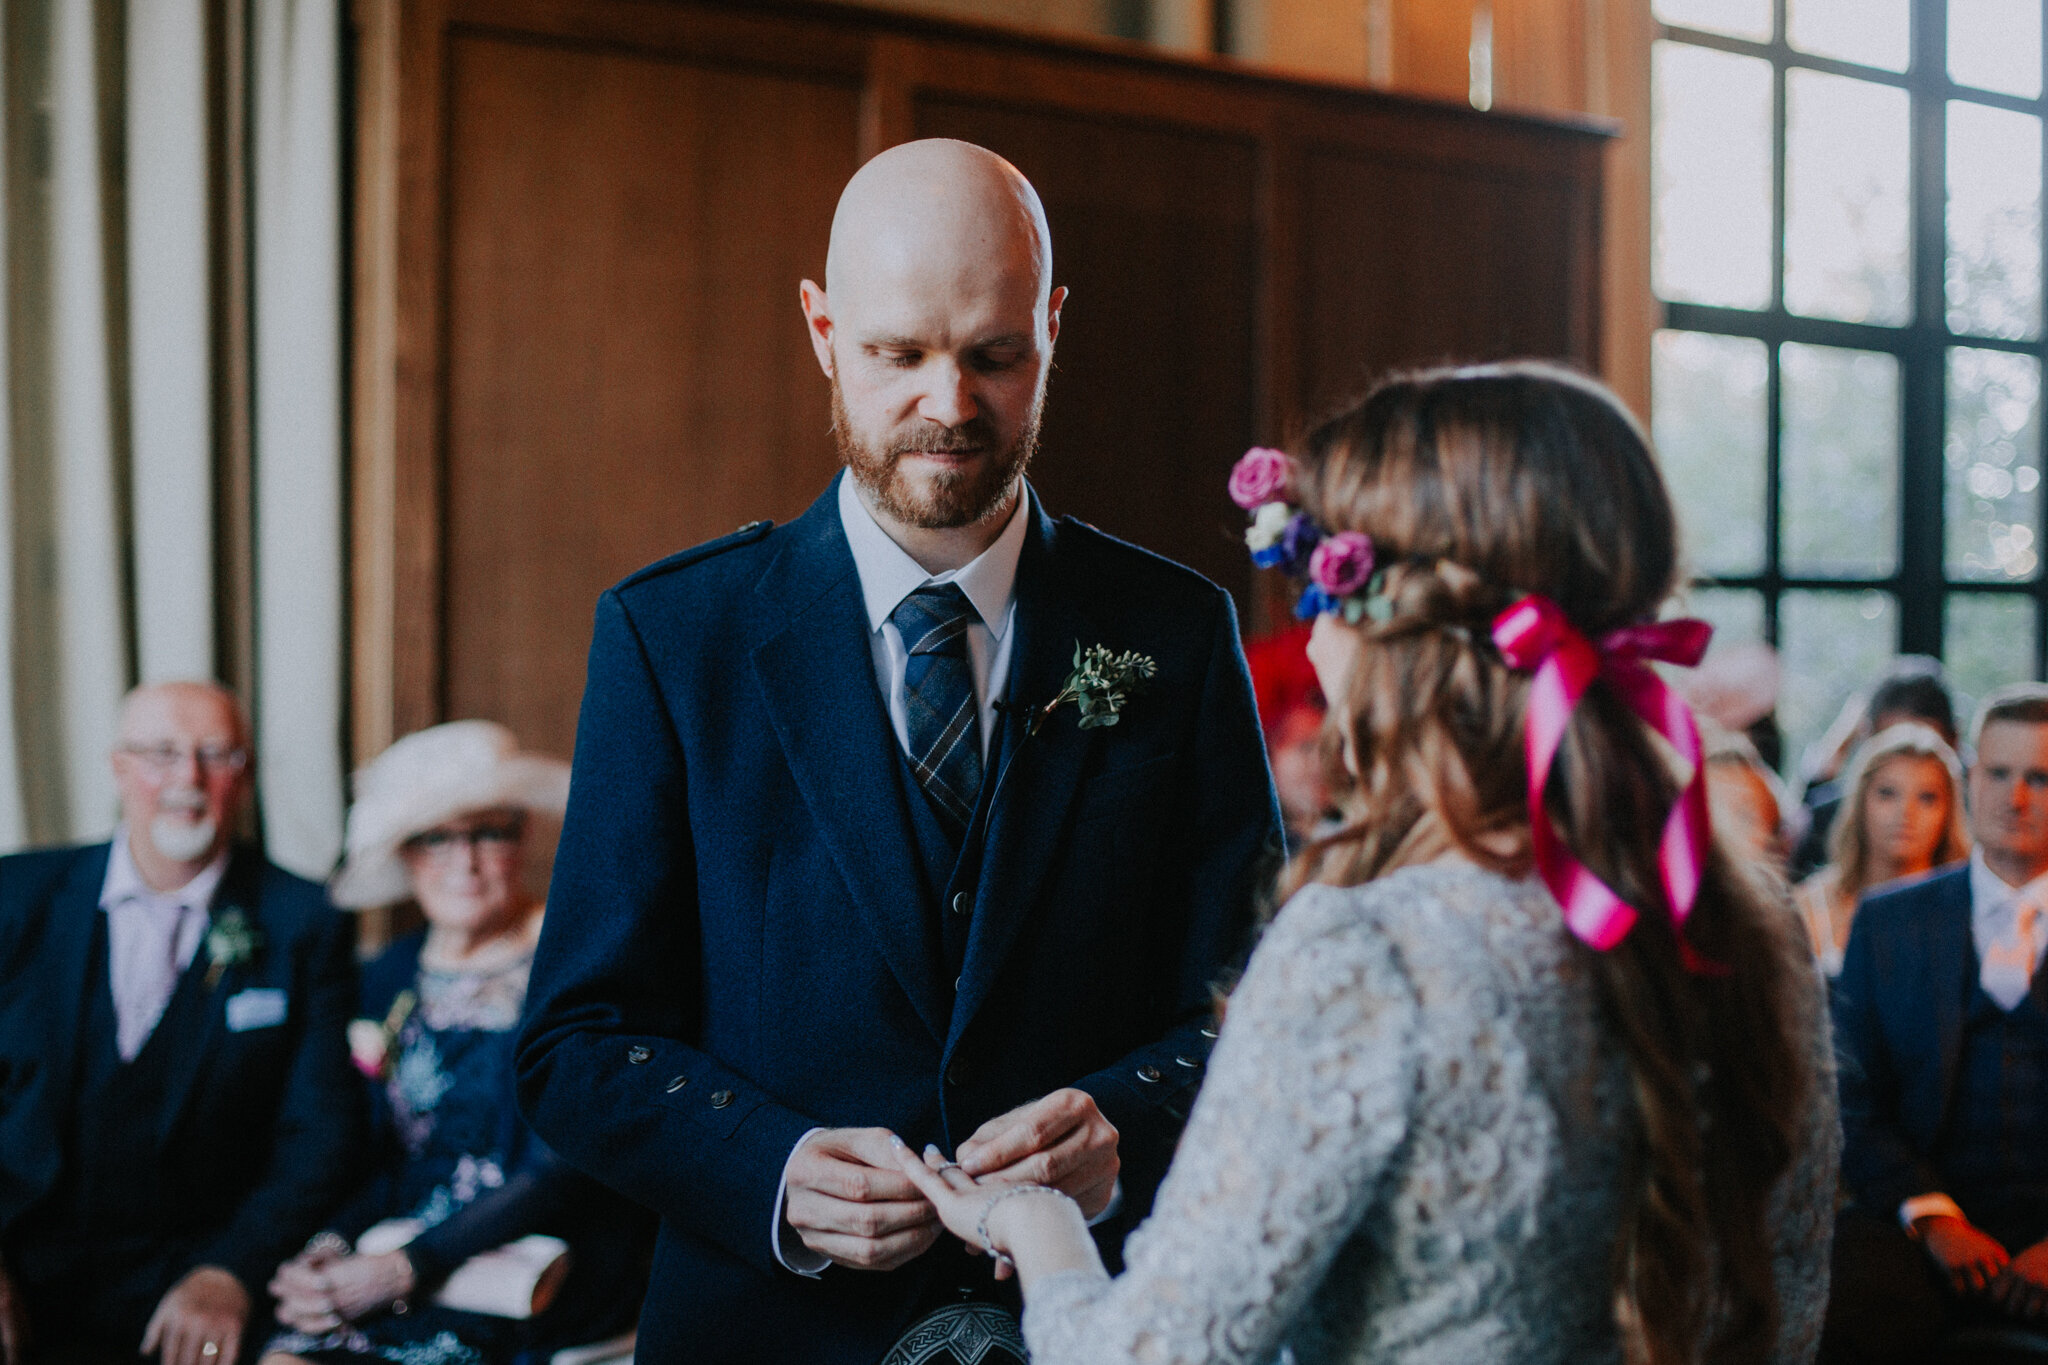 The groom is putting the wedding ring on the bride's finger